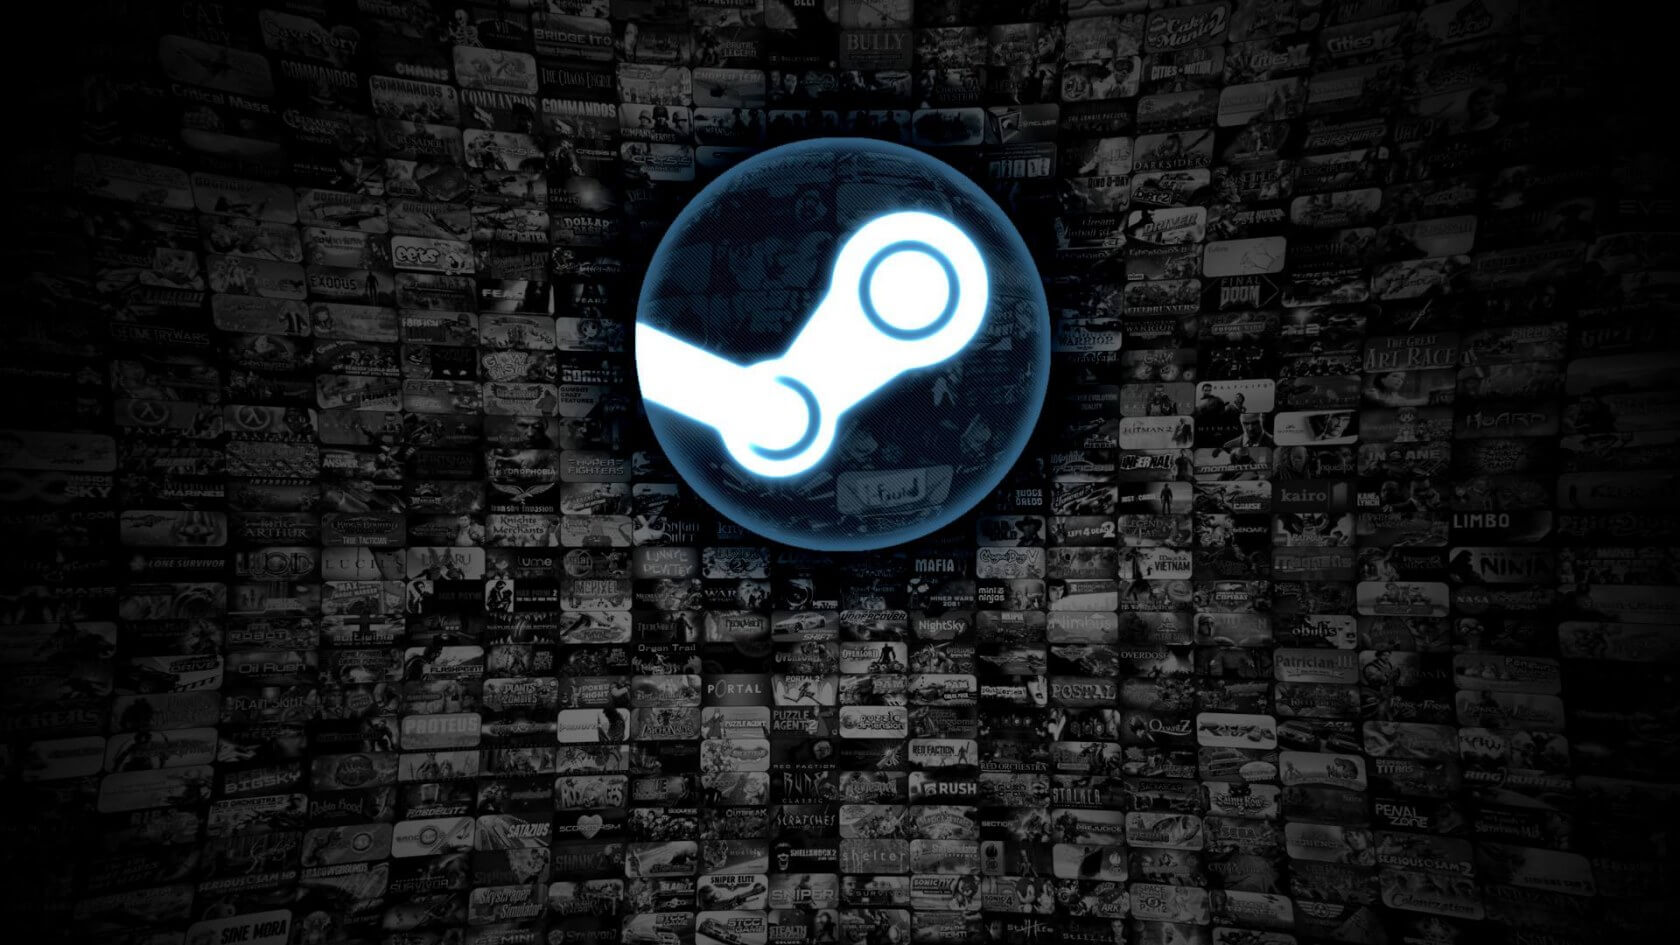 Steam now lets you stream anywhere in the world